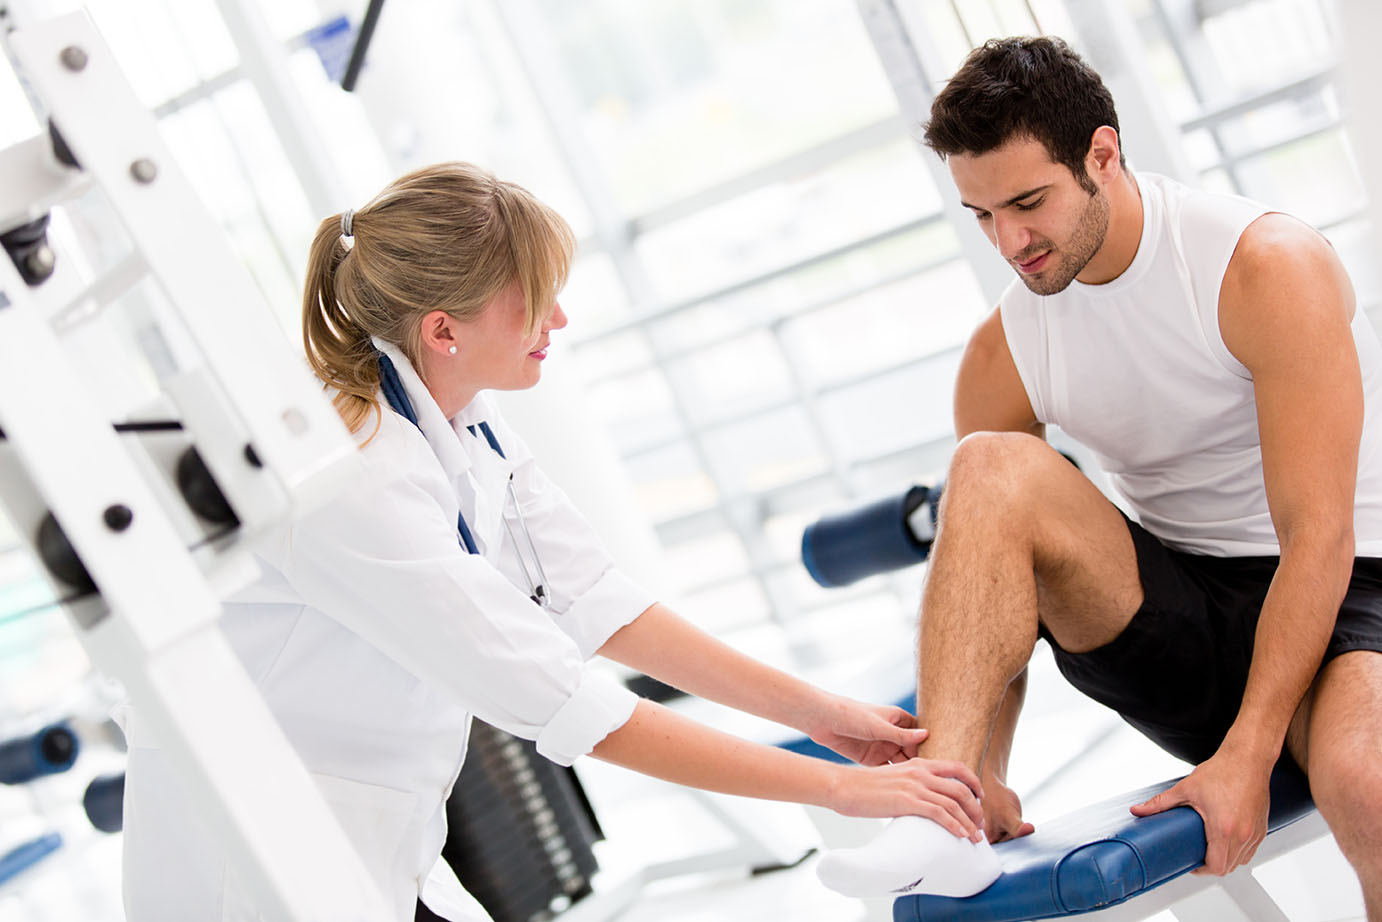 male-getting-ankle-examined